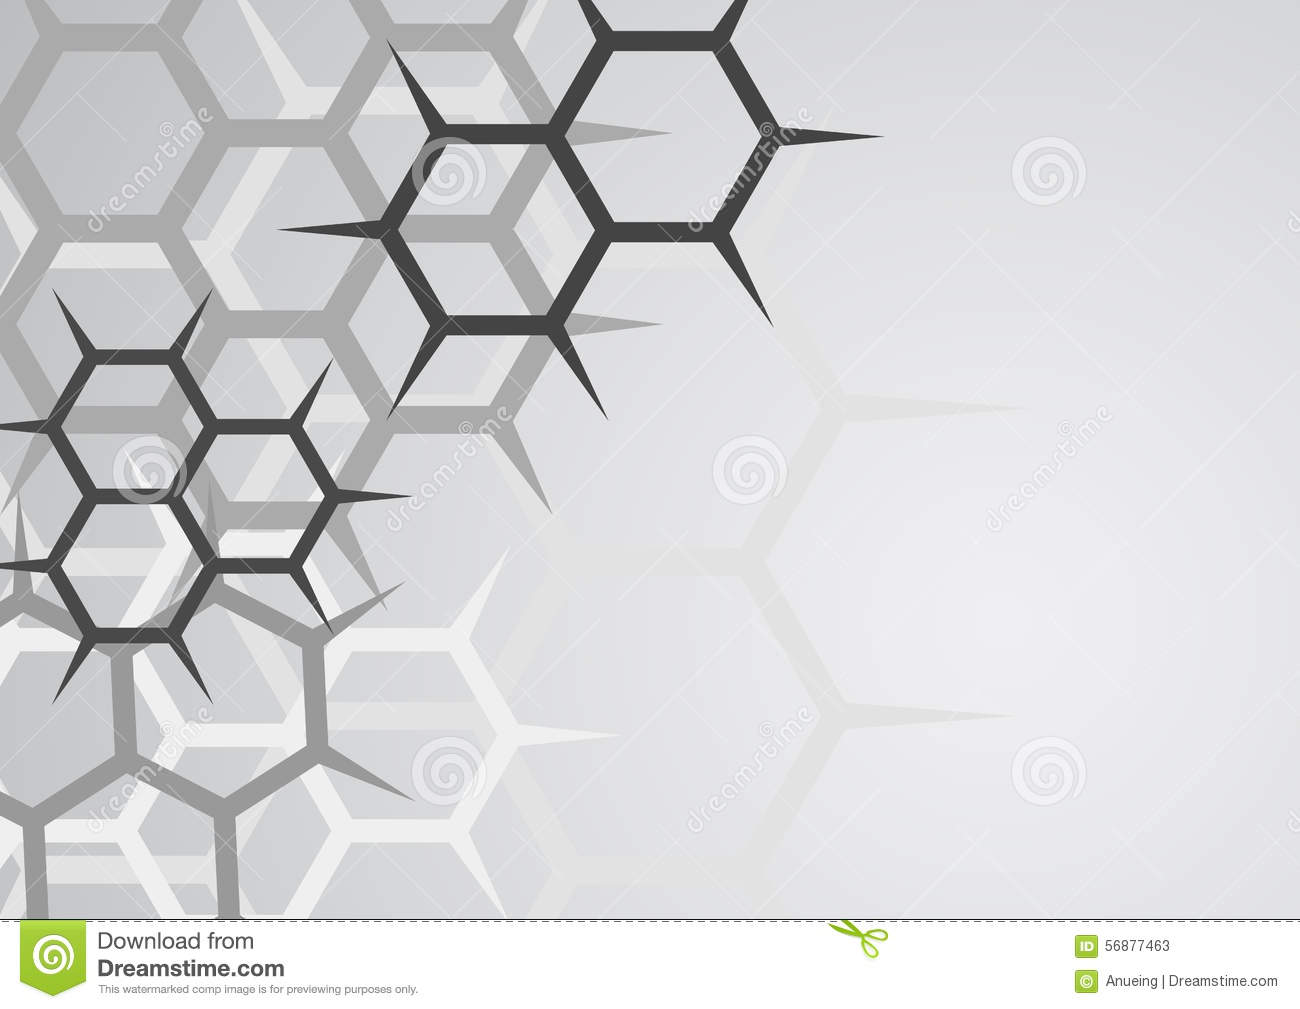 Honeycomb abstract background stock vector illustration of honeycomb abstract background seamless design voltagebd Image collections